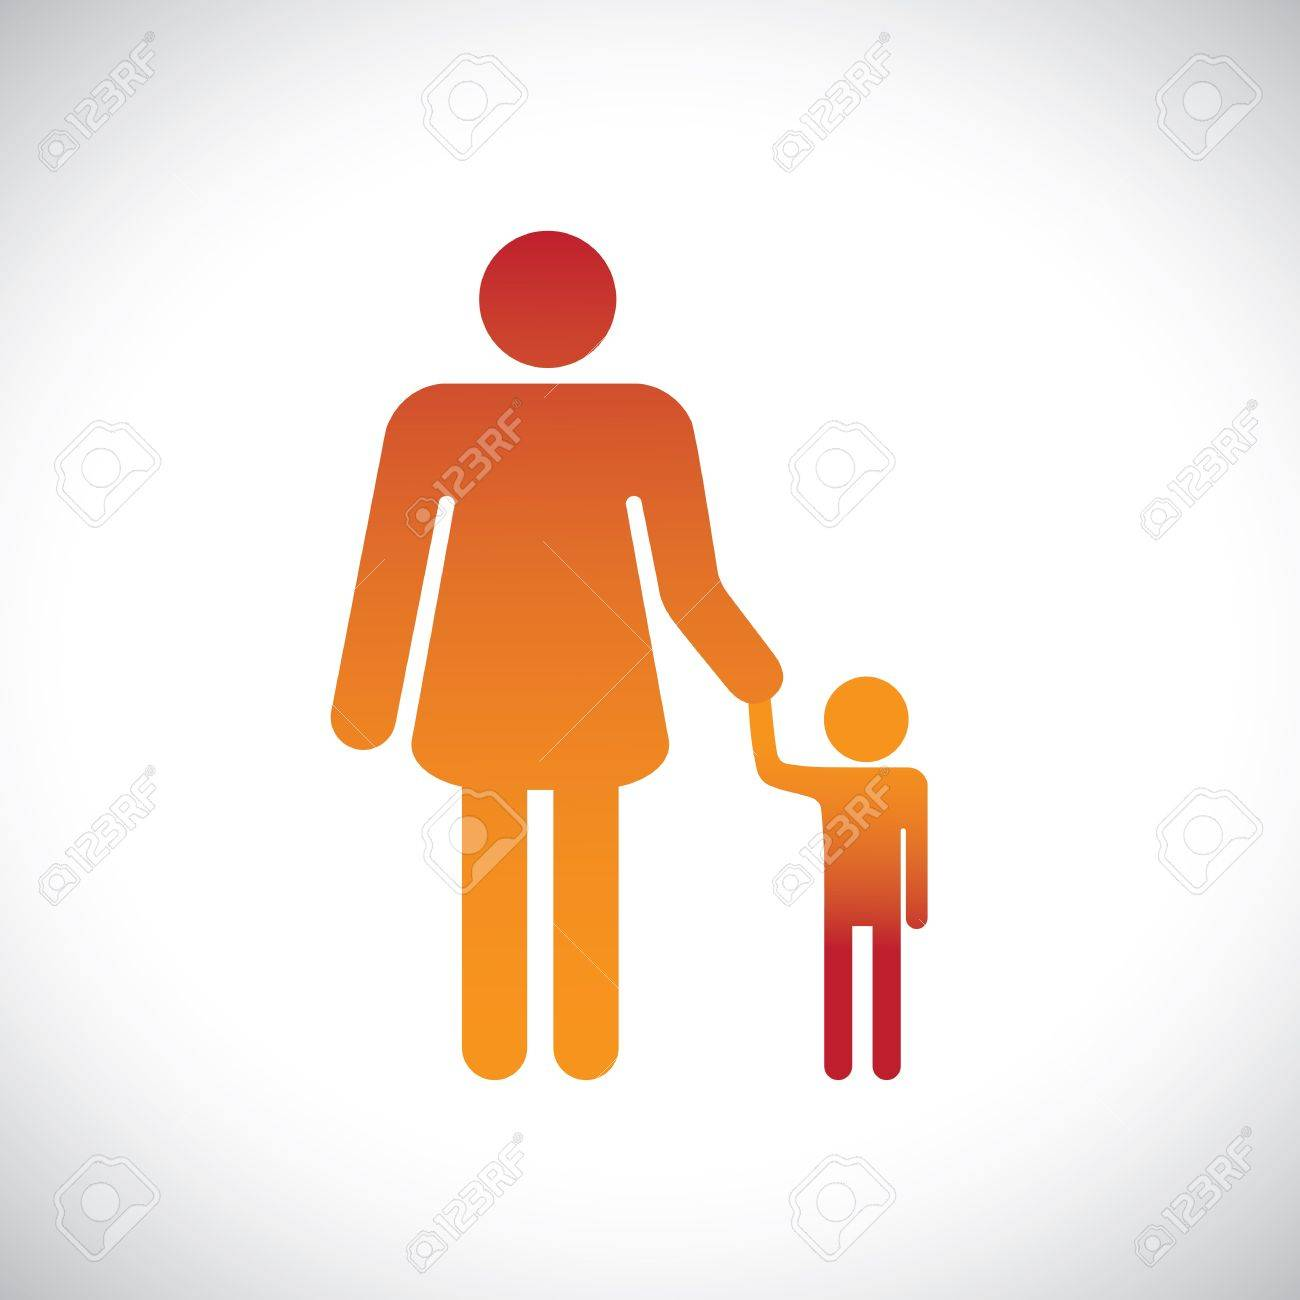 Concept illustration of mother & son together. This graphic represents the bonding between a parent and child with the mother holding the hand of her son Stock Vector - 16609063